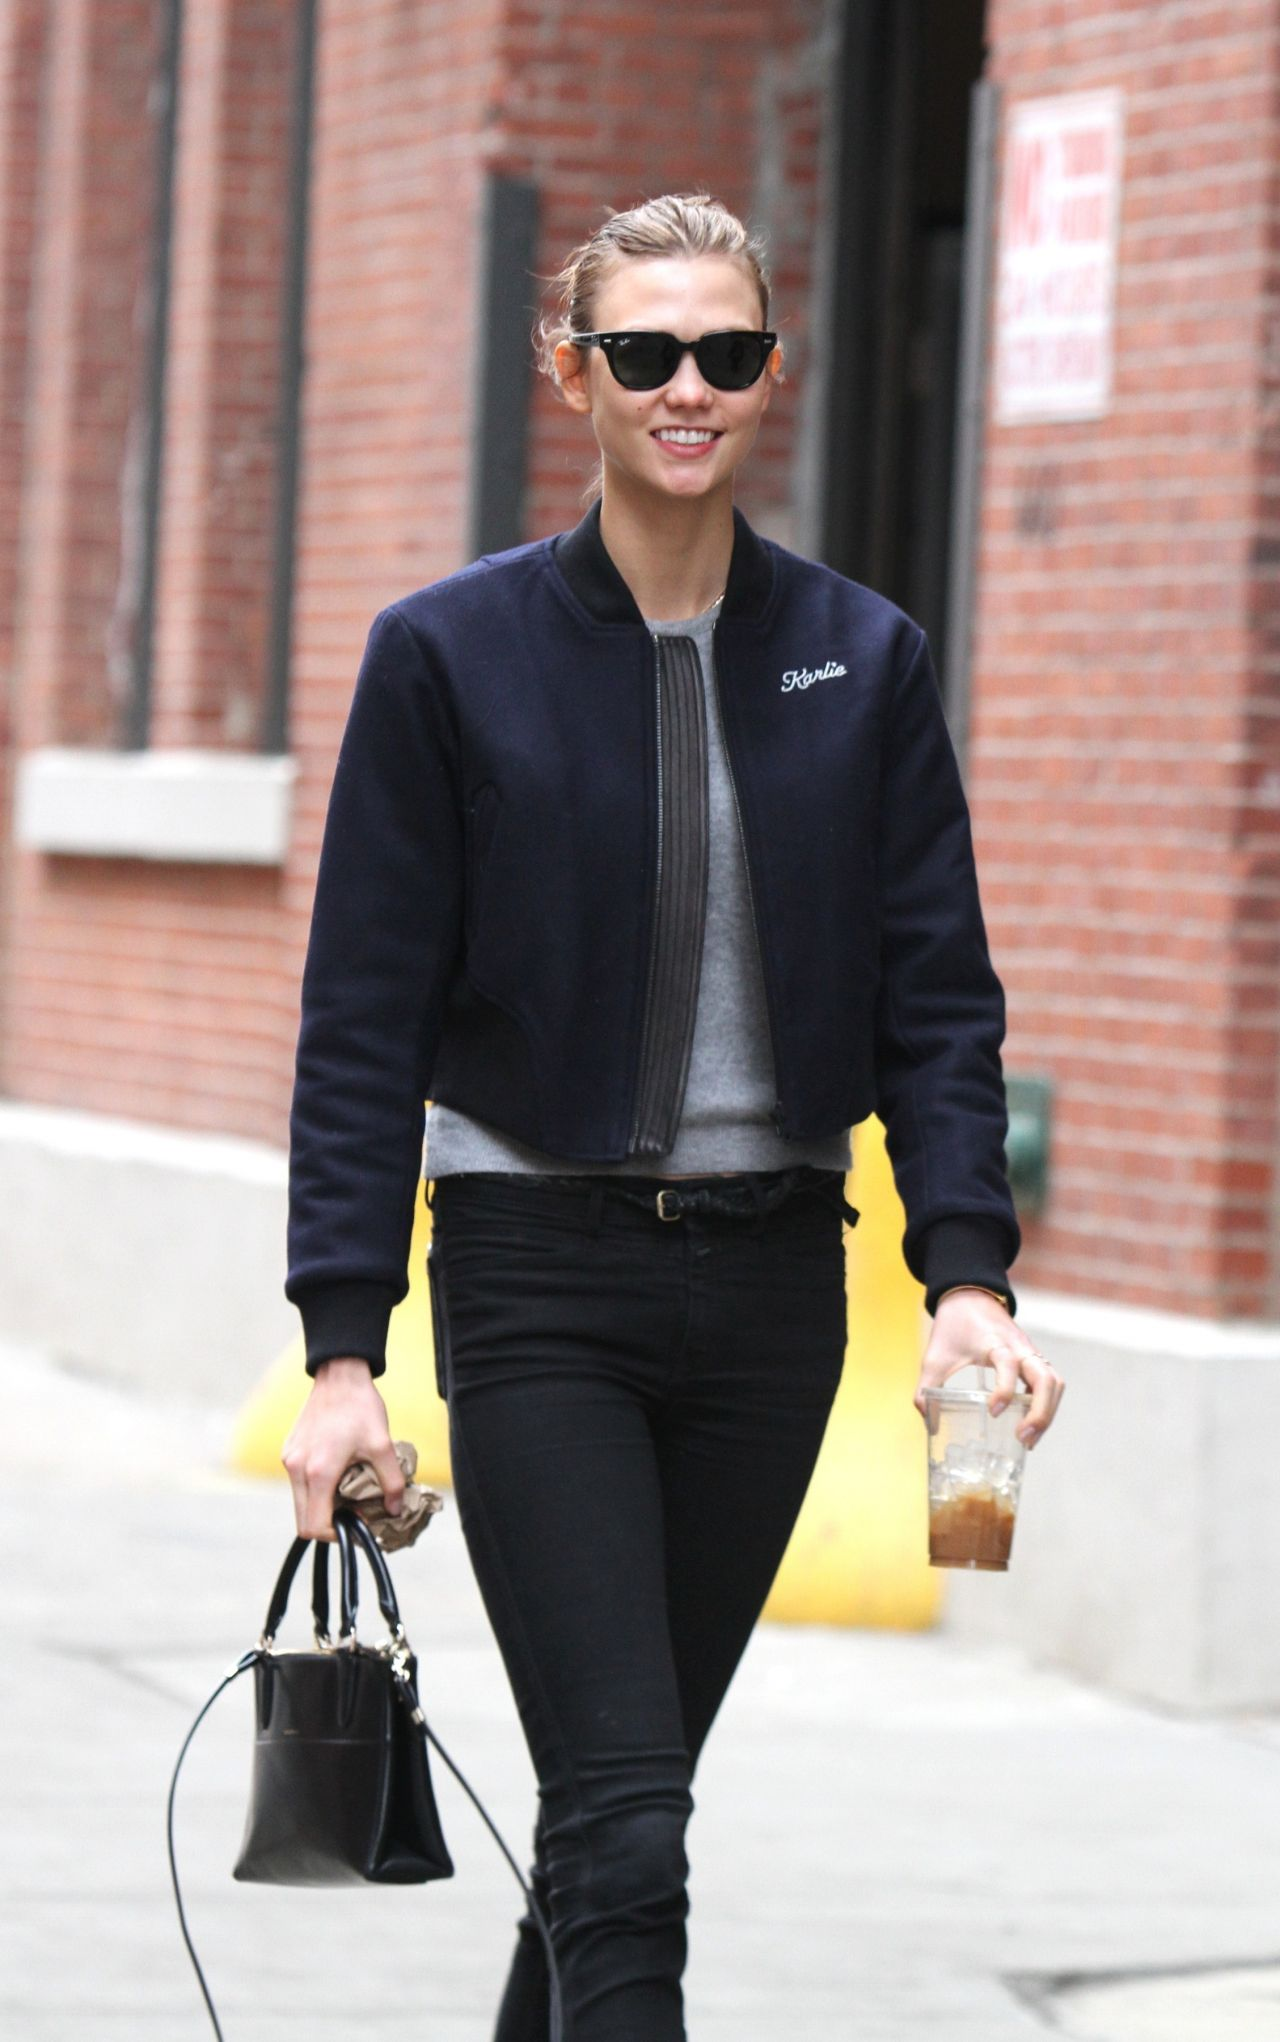 Karlie Kloss Street Style - Meatpacking District, March 2014